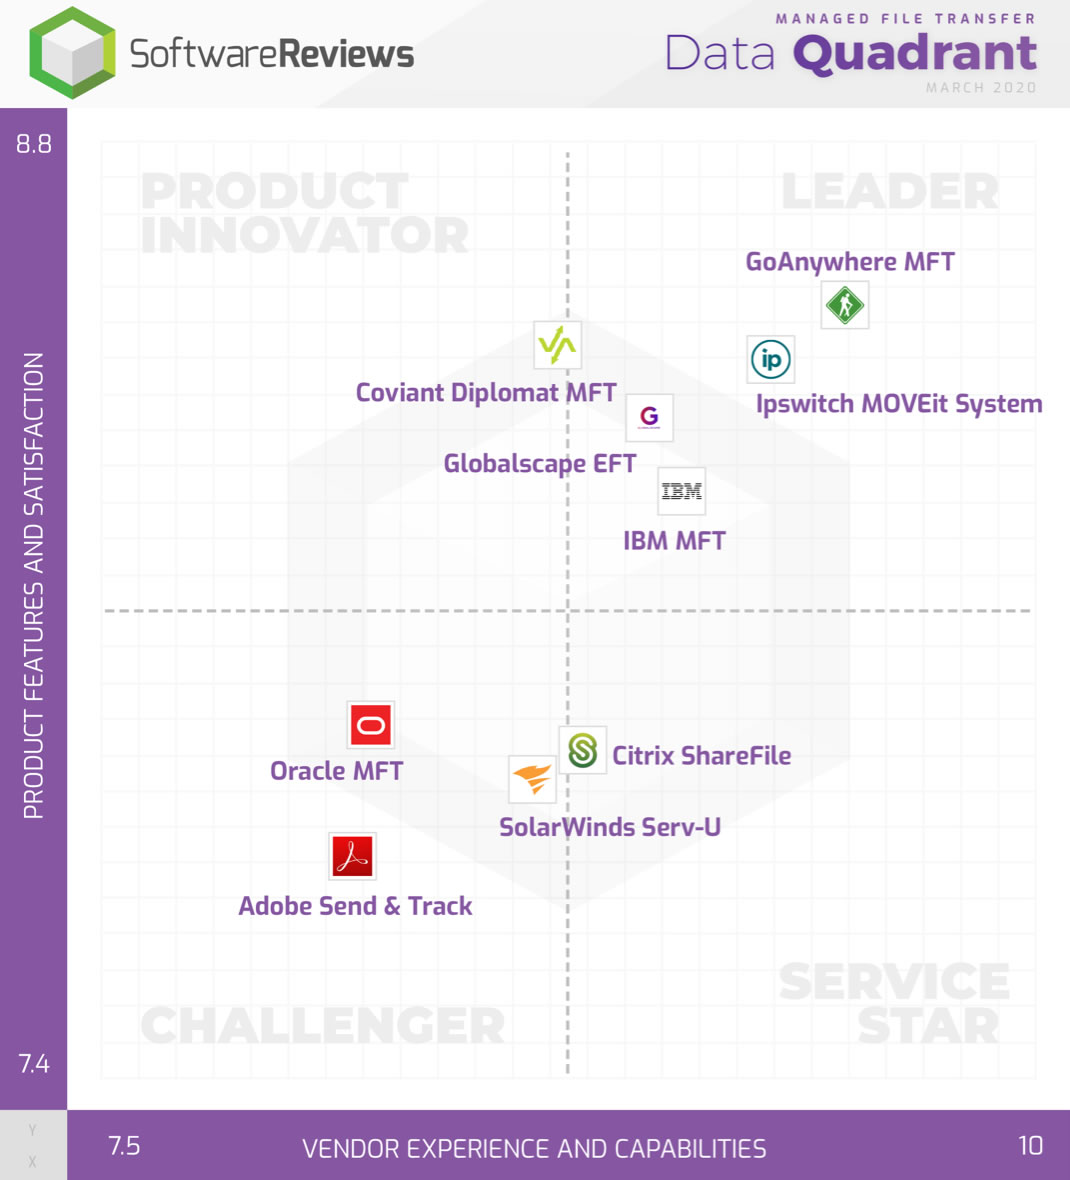 GoAnywhere is a leading software according to software reviews data quadrant